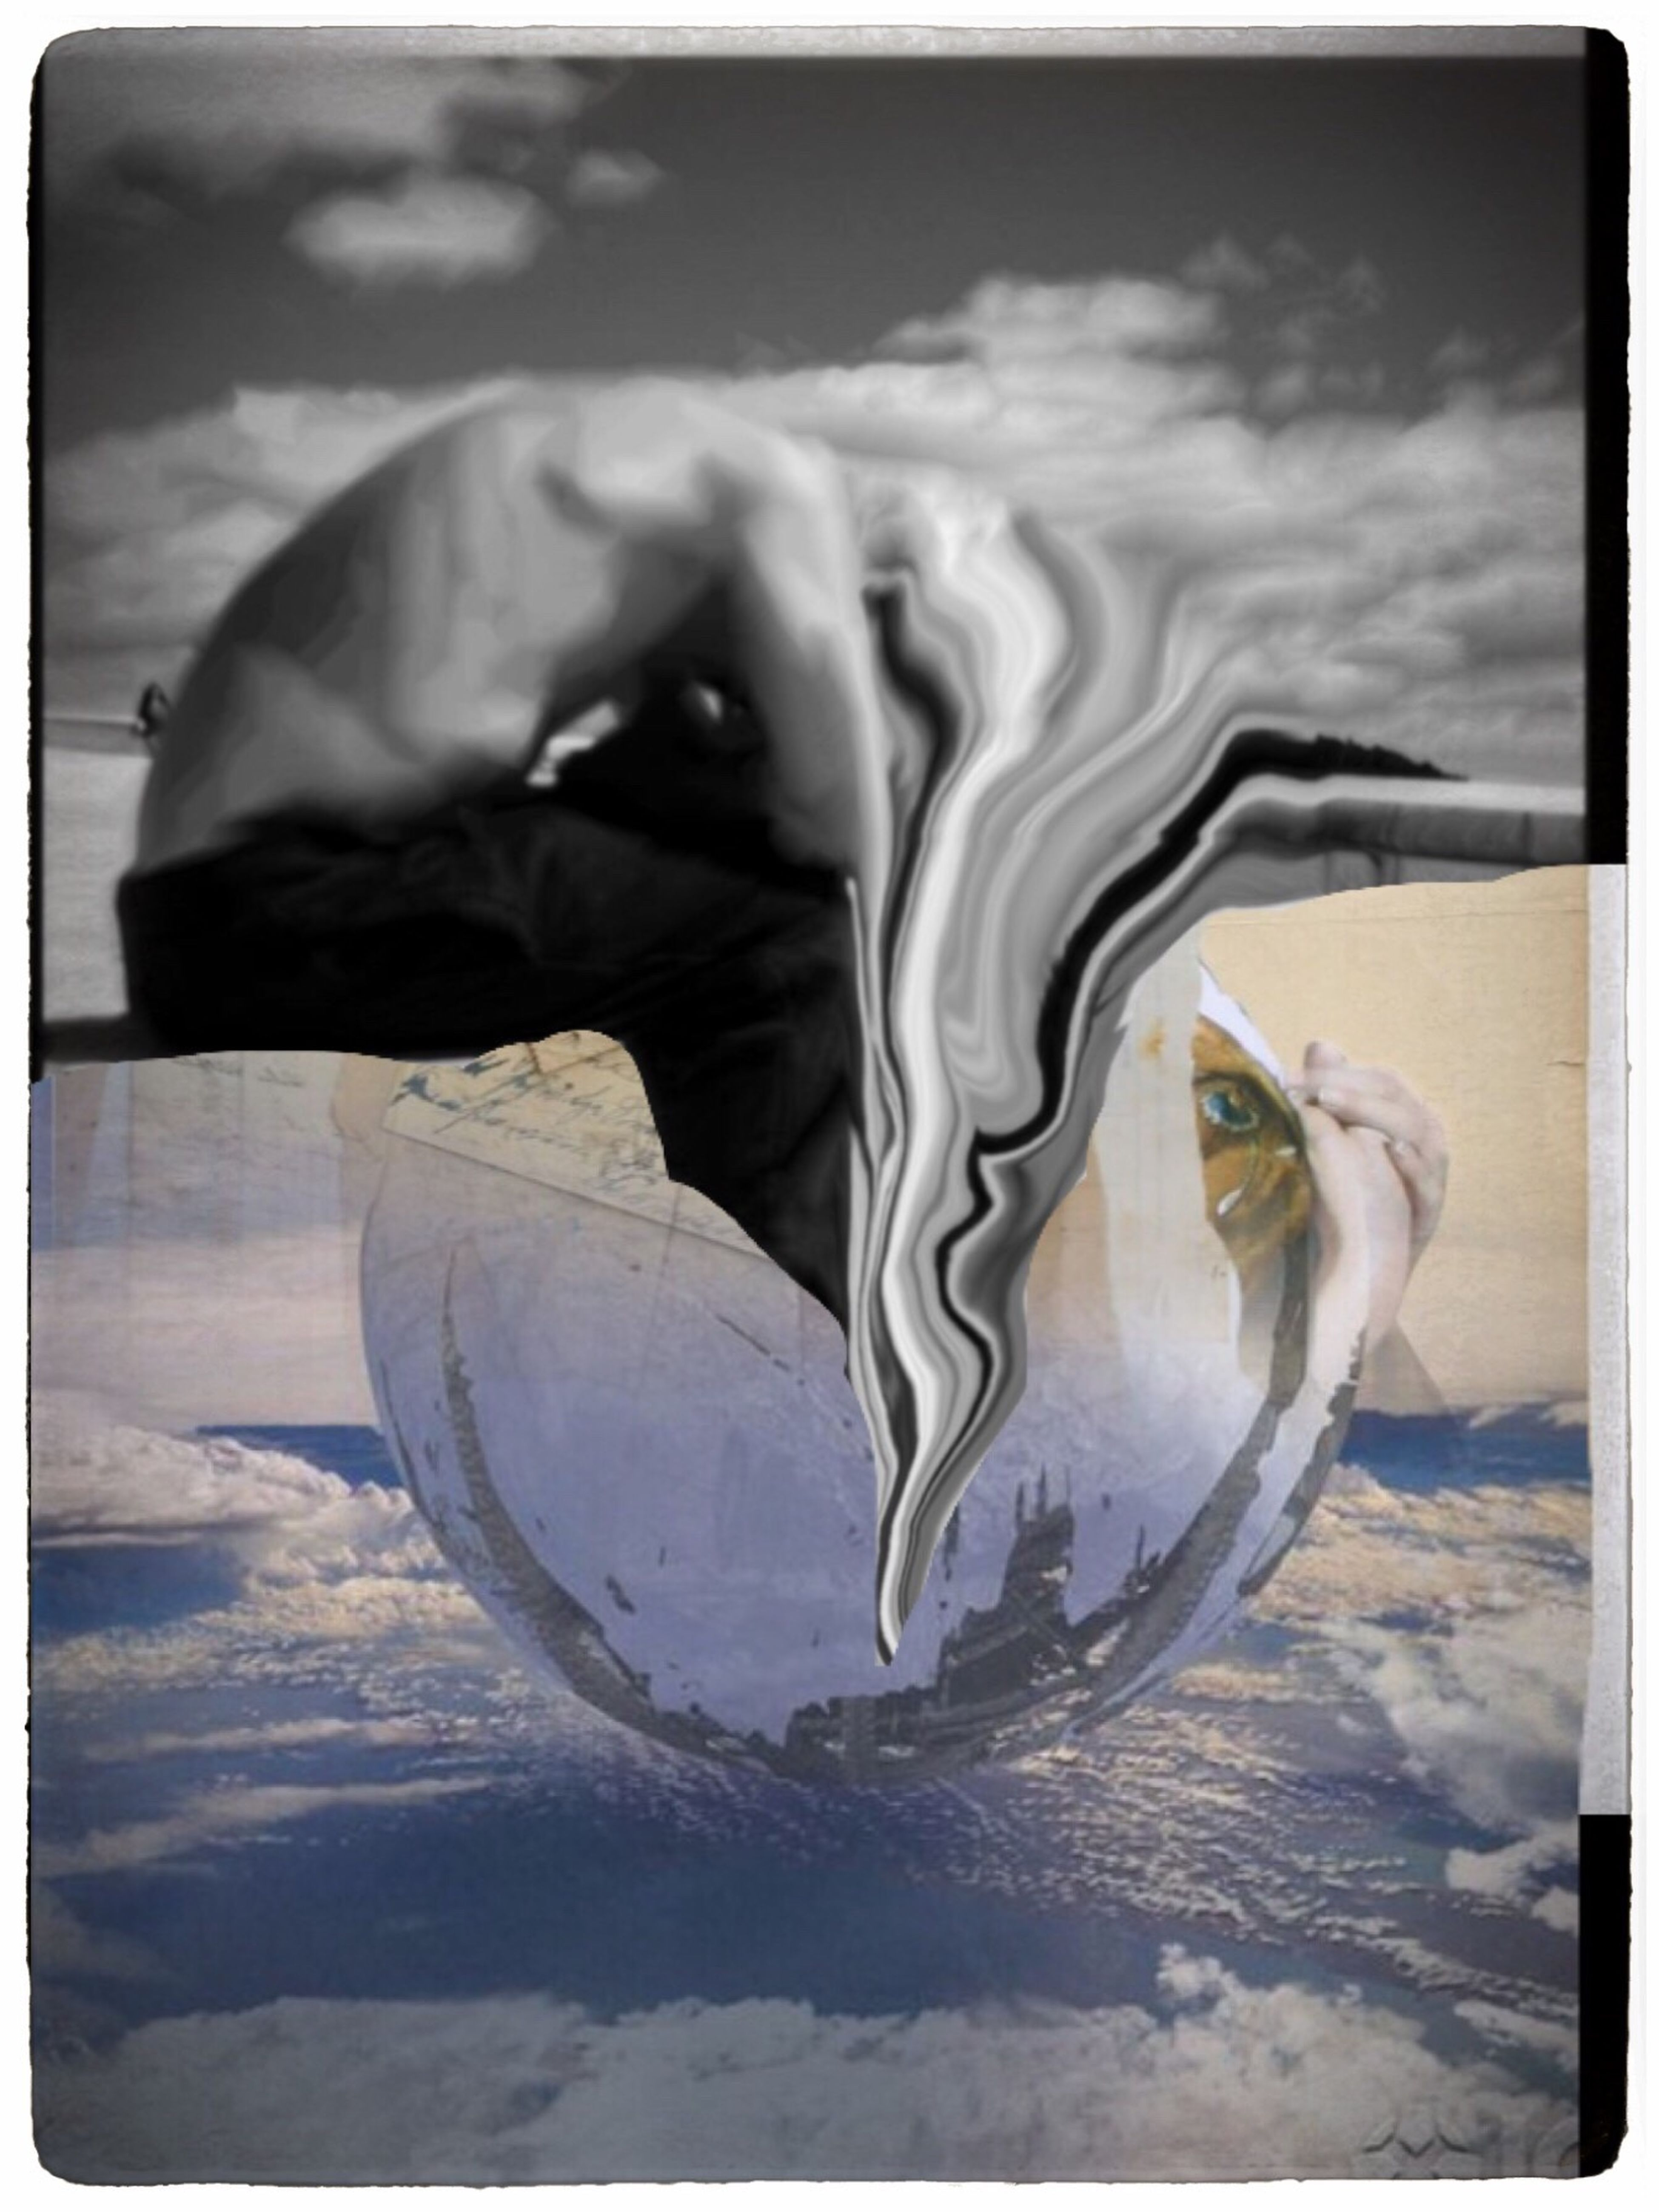 Melting Back Into The Egg Photographic Approximation Exploring The Subconscient Apre Moi Le Collage Forgotten Dreams New Nightmares Primum Non Nocere!